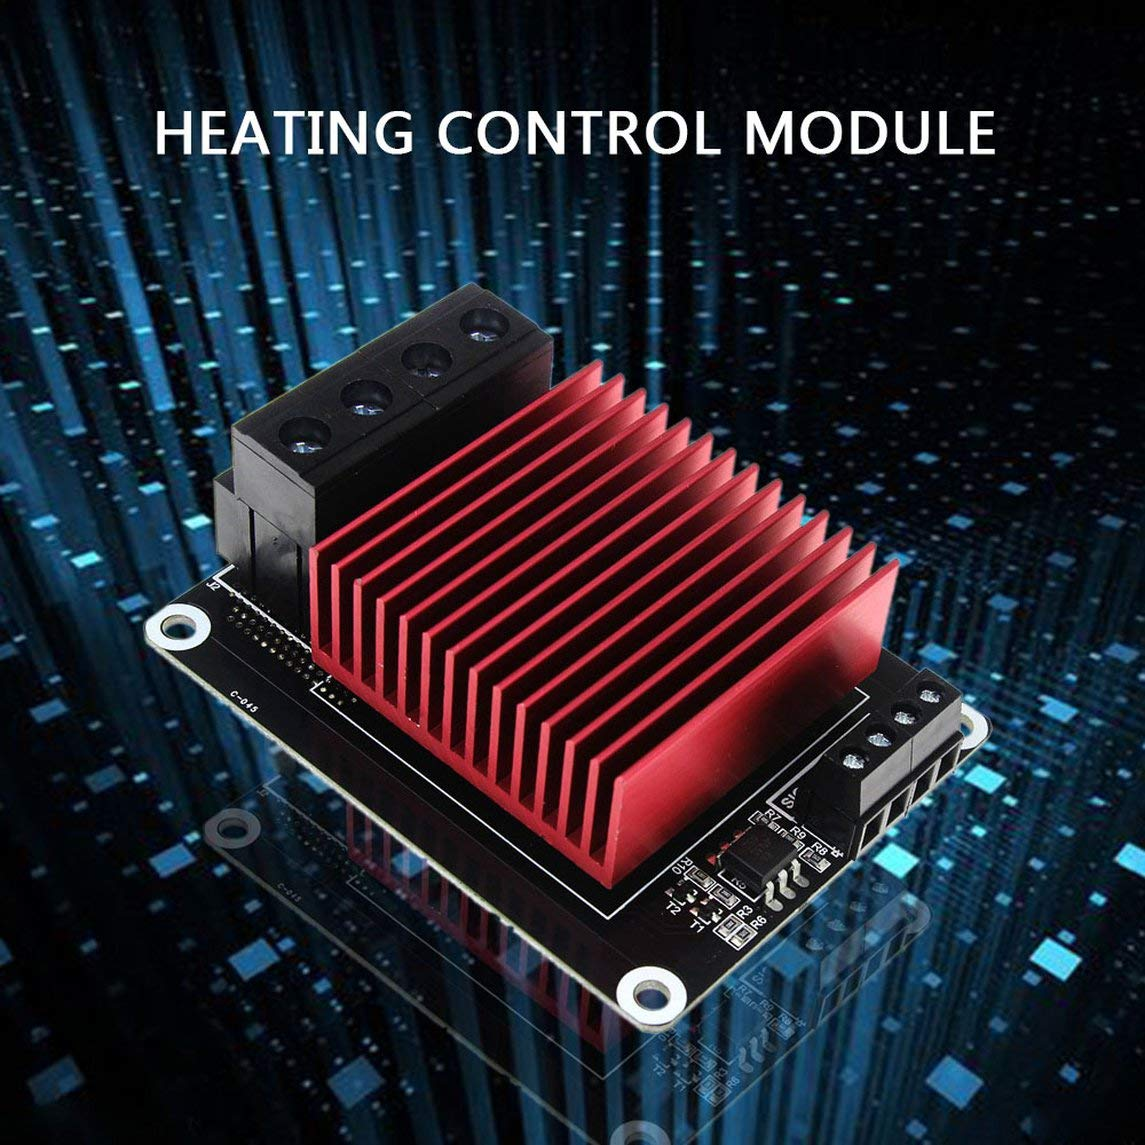 YXTFN 3D Printer Accessories Hot Bed/Print Head Heating Control Mks Mos Module by Magicalworld (Image #4)